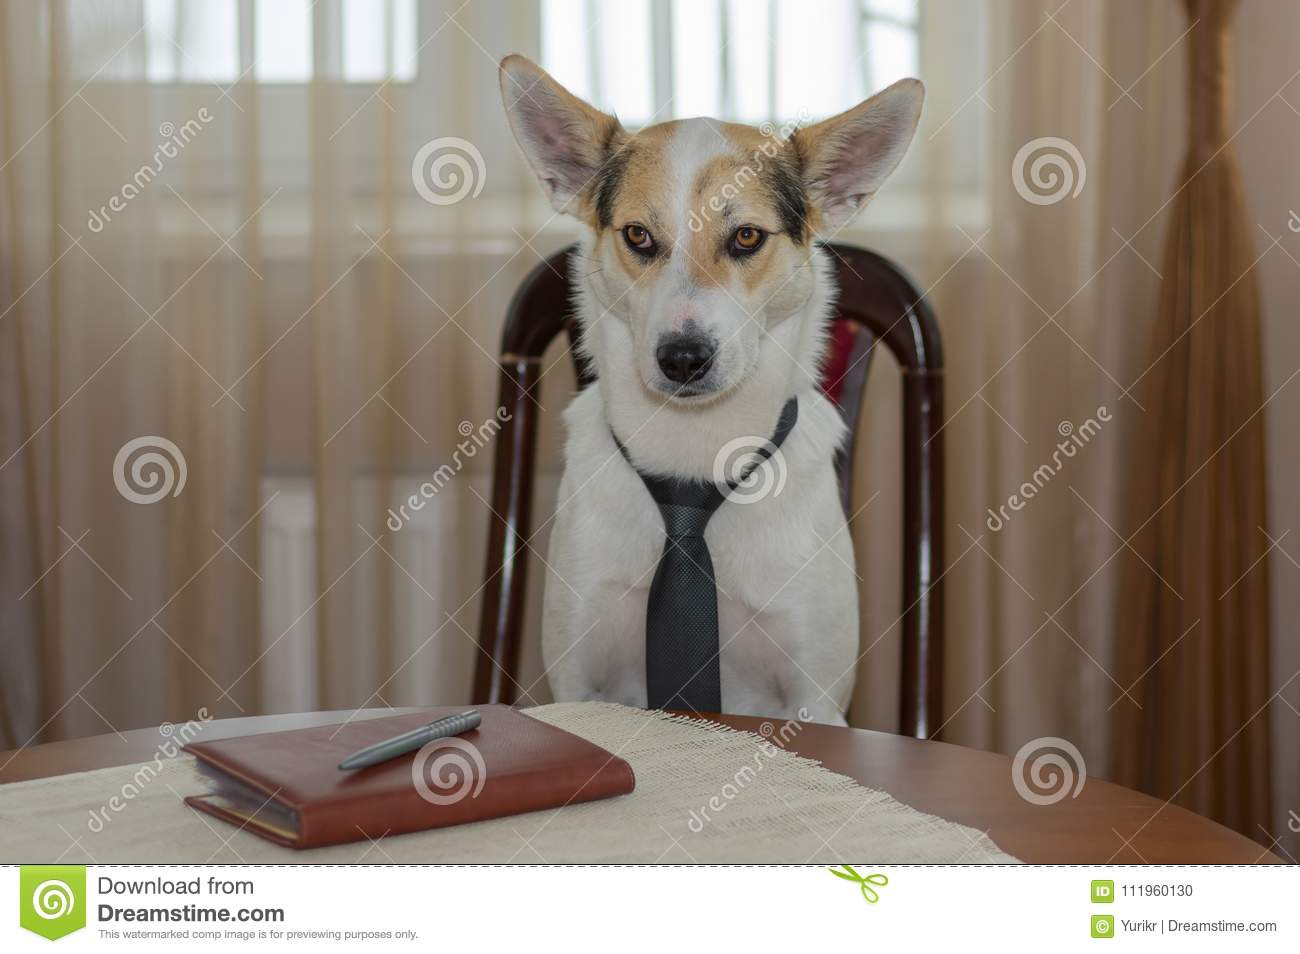 Portrait of white mixed-breed dog wearing necktie, hard thinking while sitting on a chair at the table